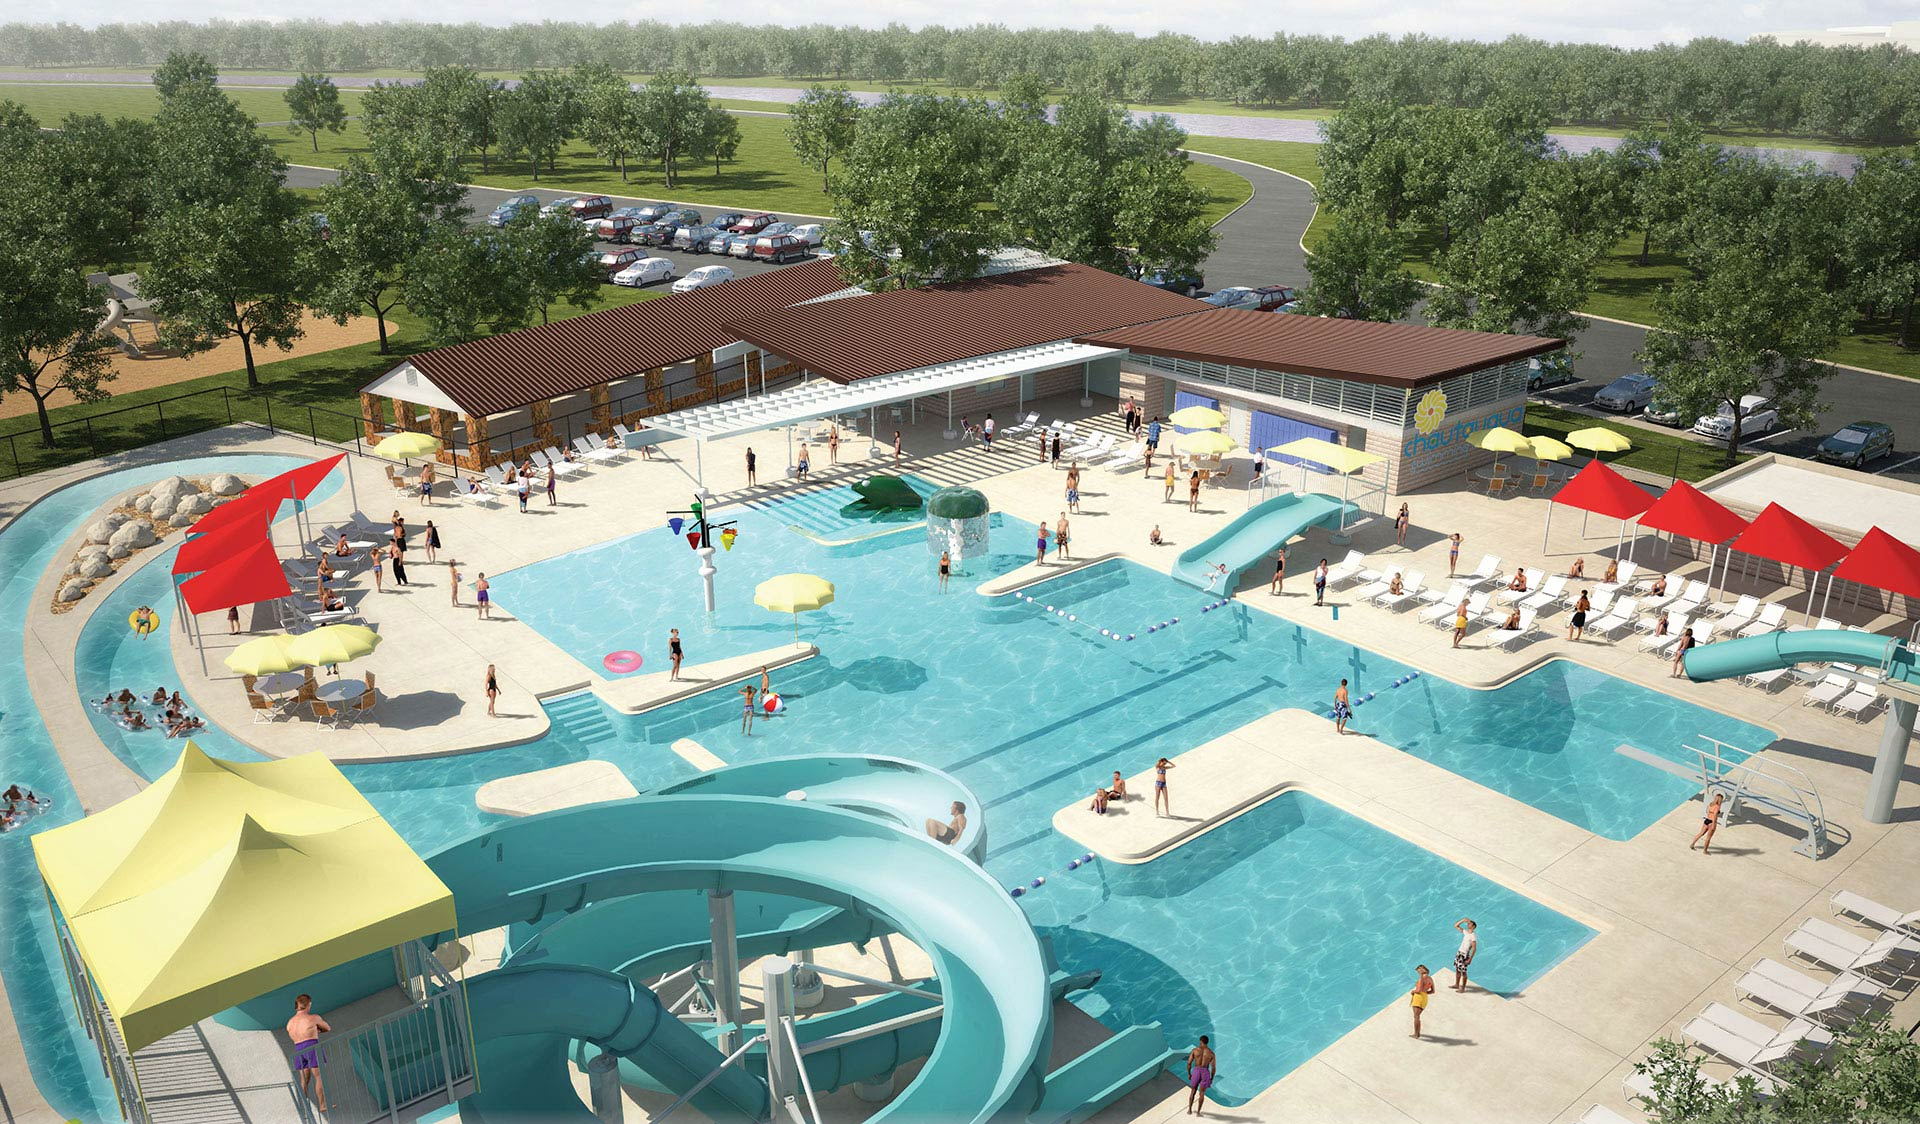 Chautauqua aquatic center beloit kansas for Public swimming pools kansas city